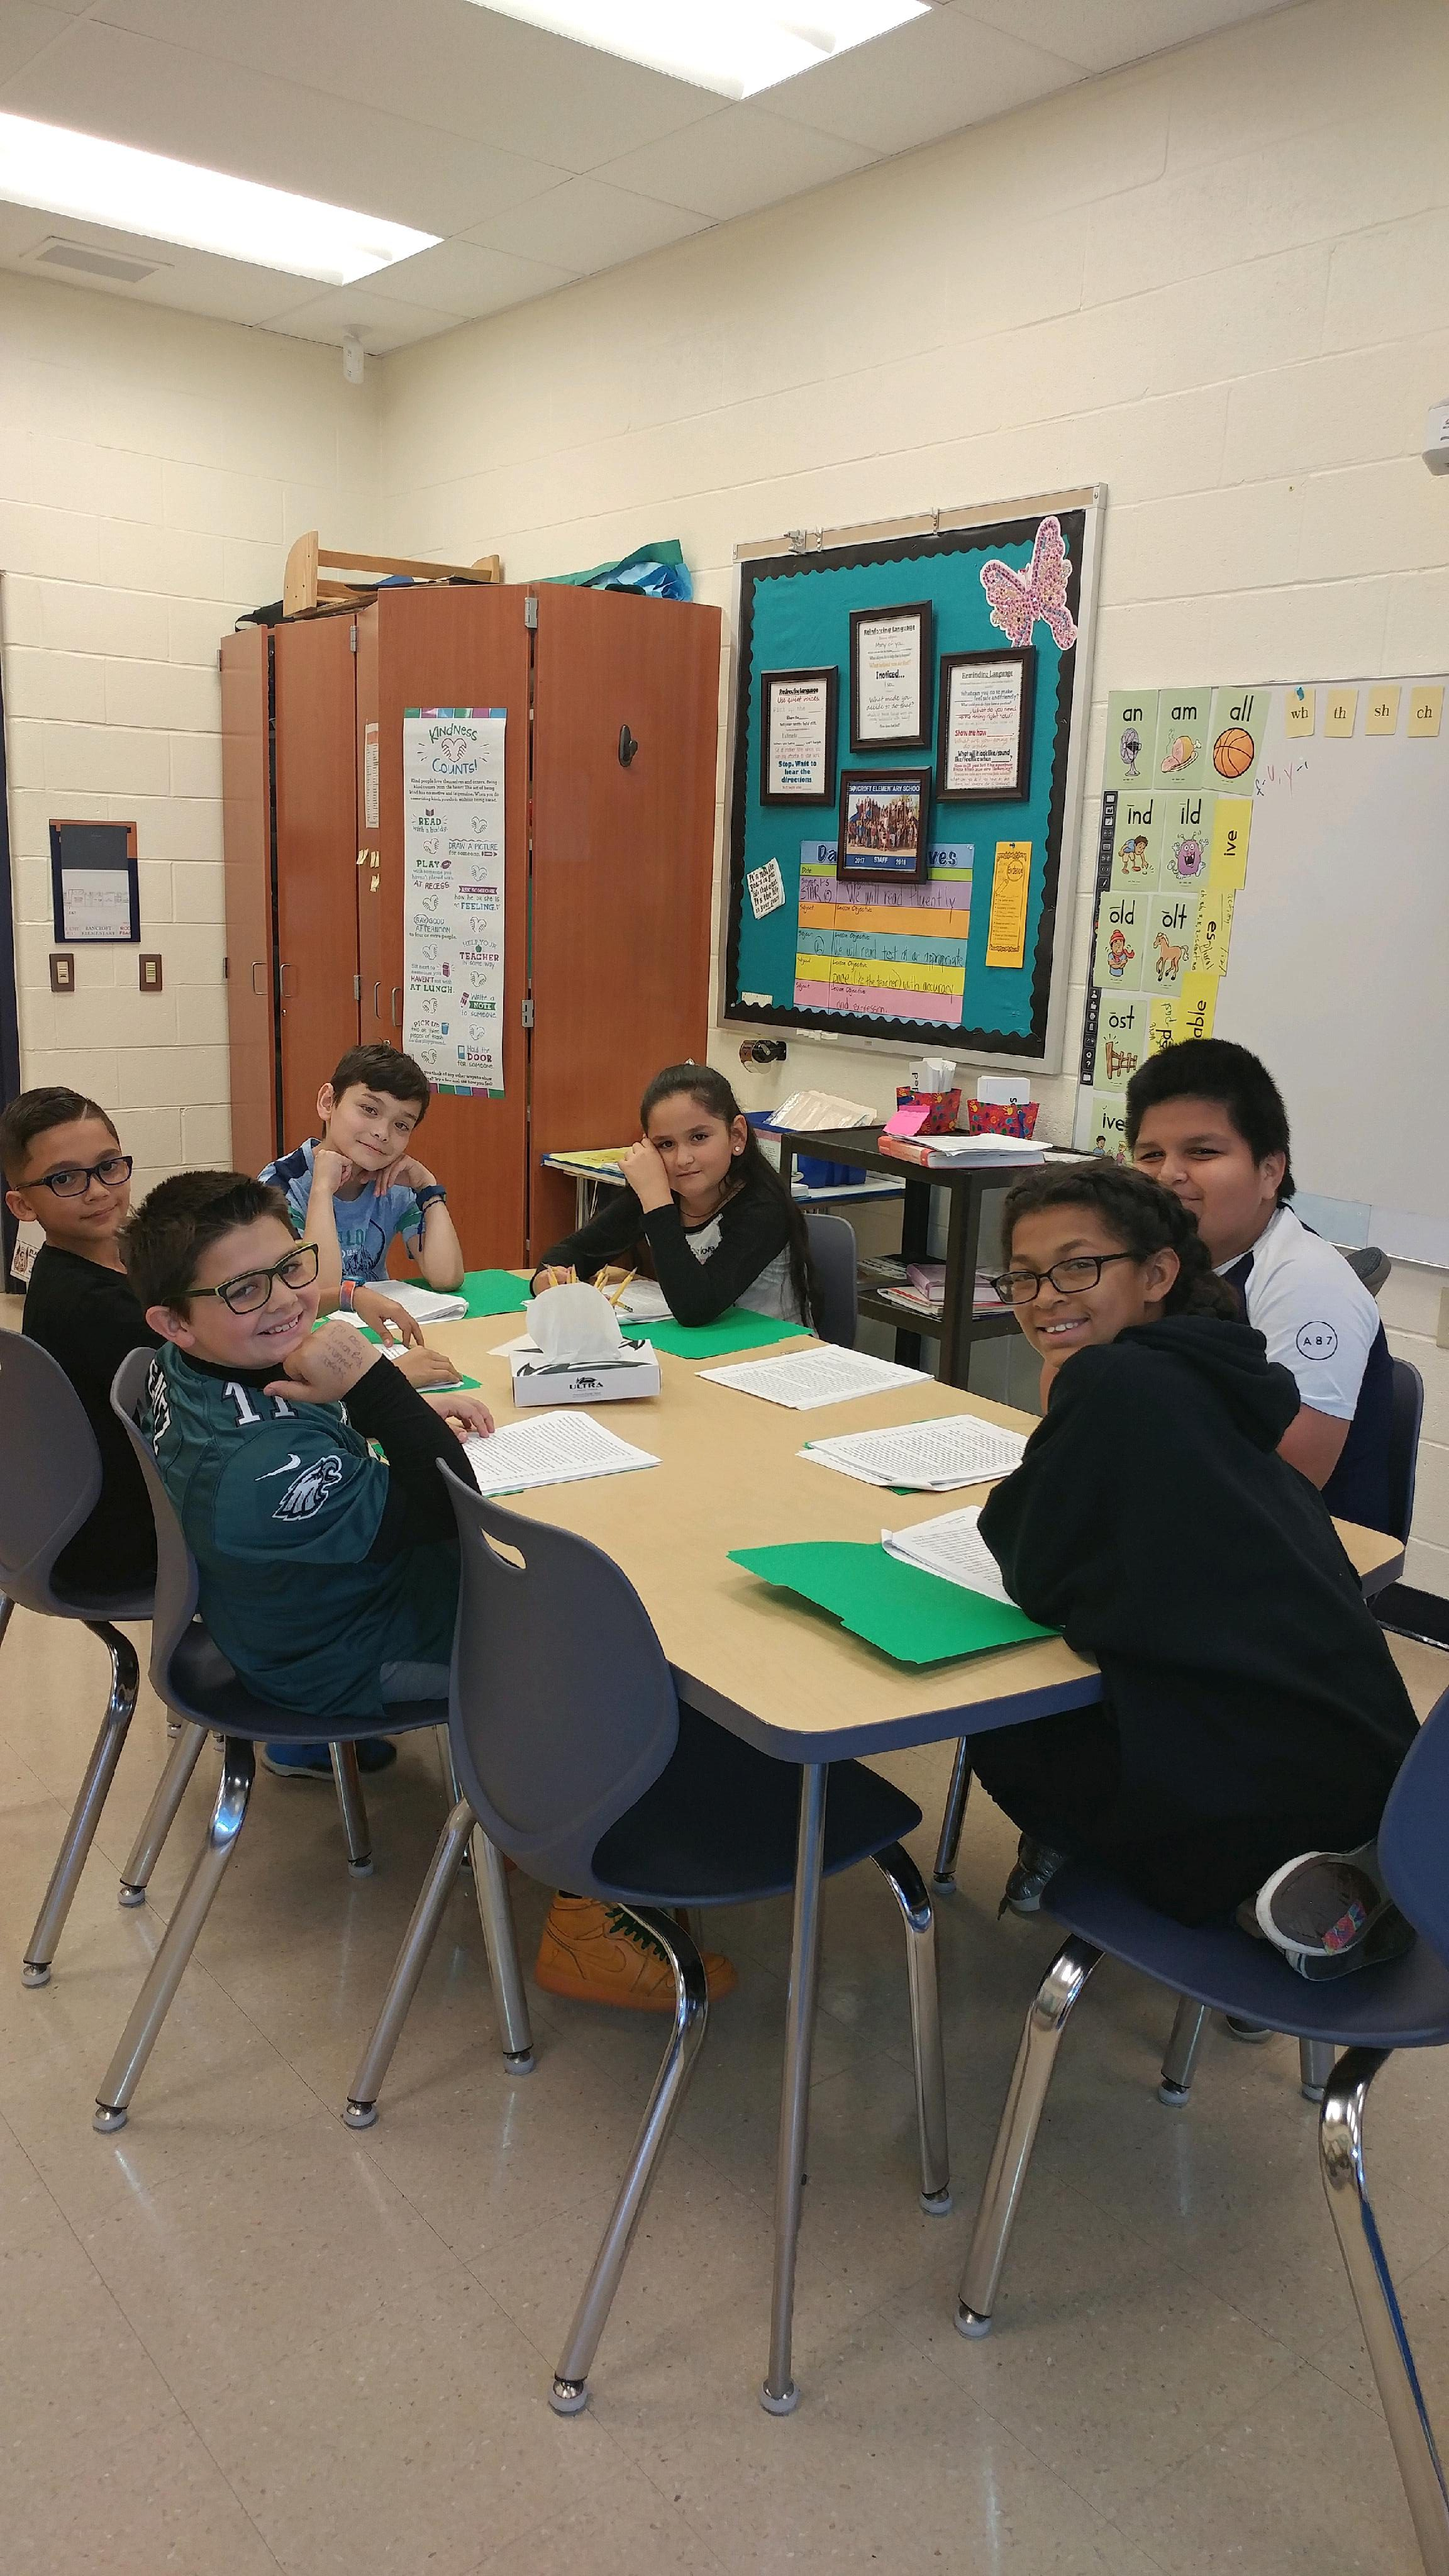 group of students at a table